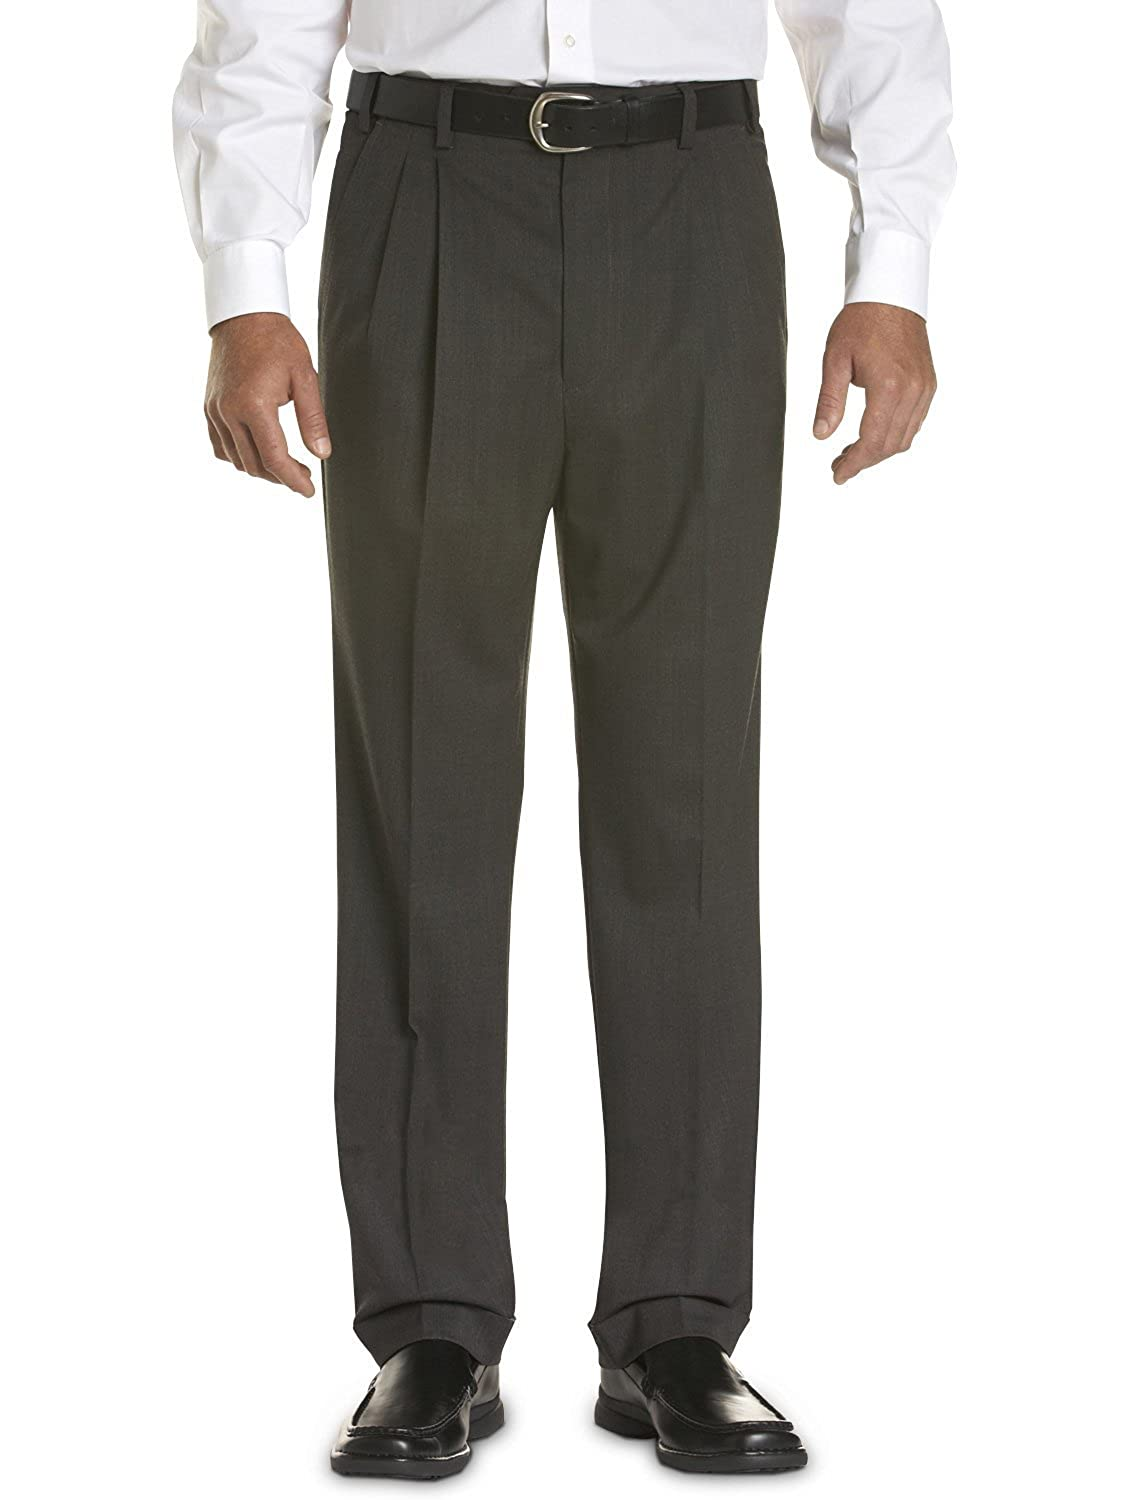 Gold Series Big & Tall Continuous Comfort Pleated Sateen Dress Pants